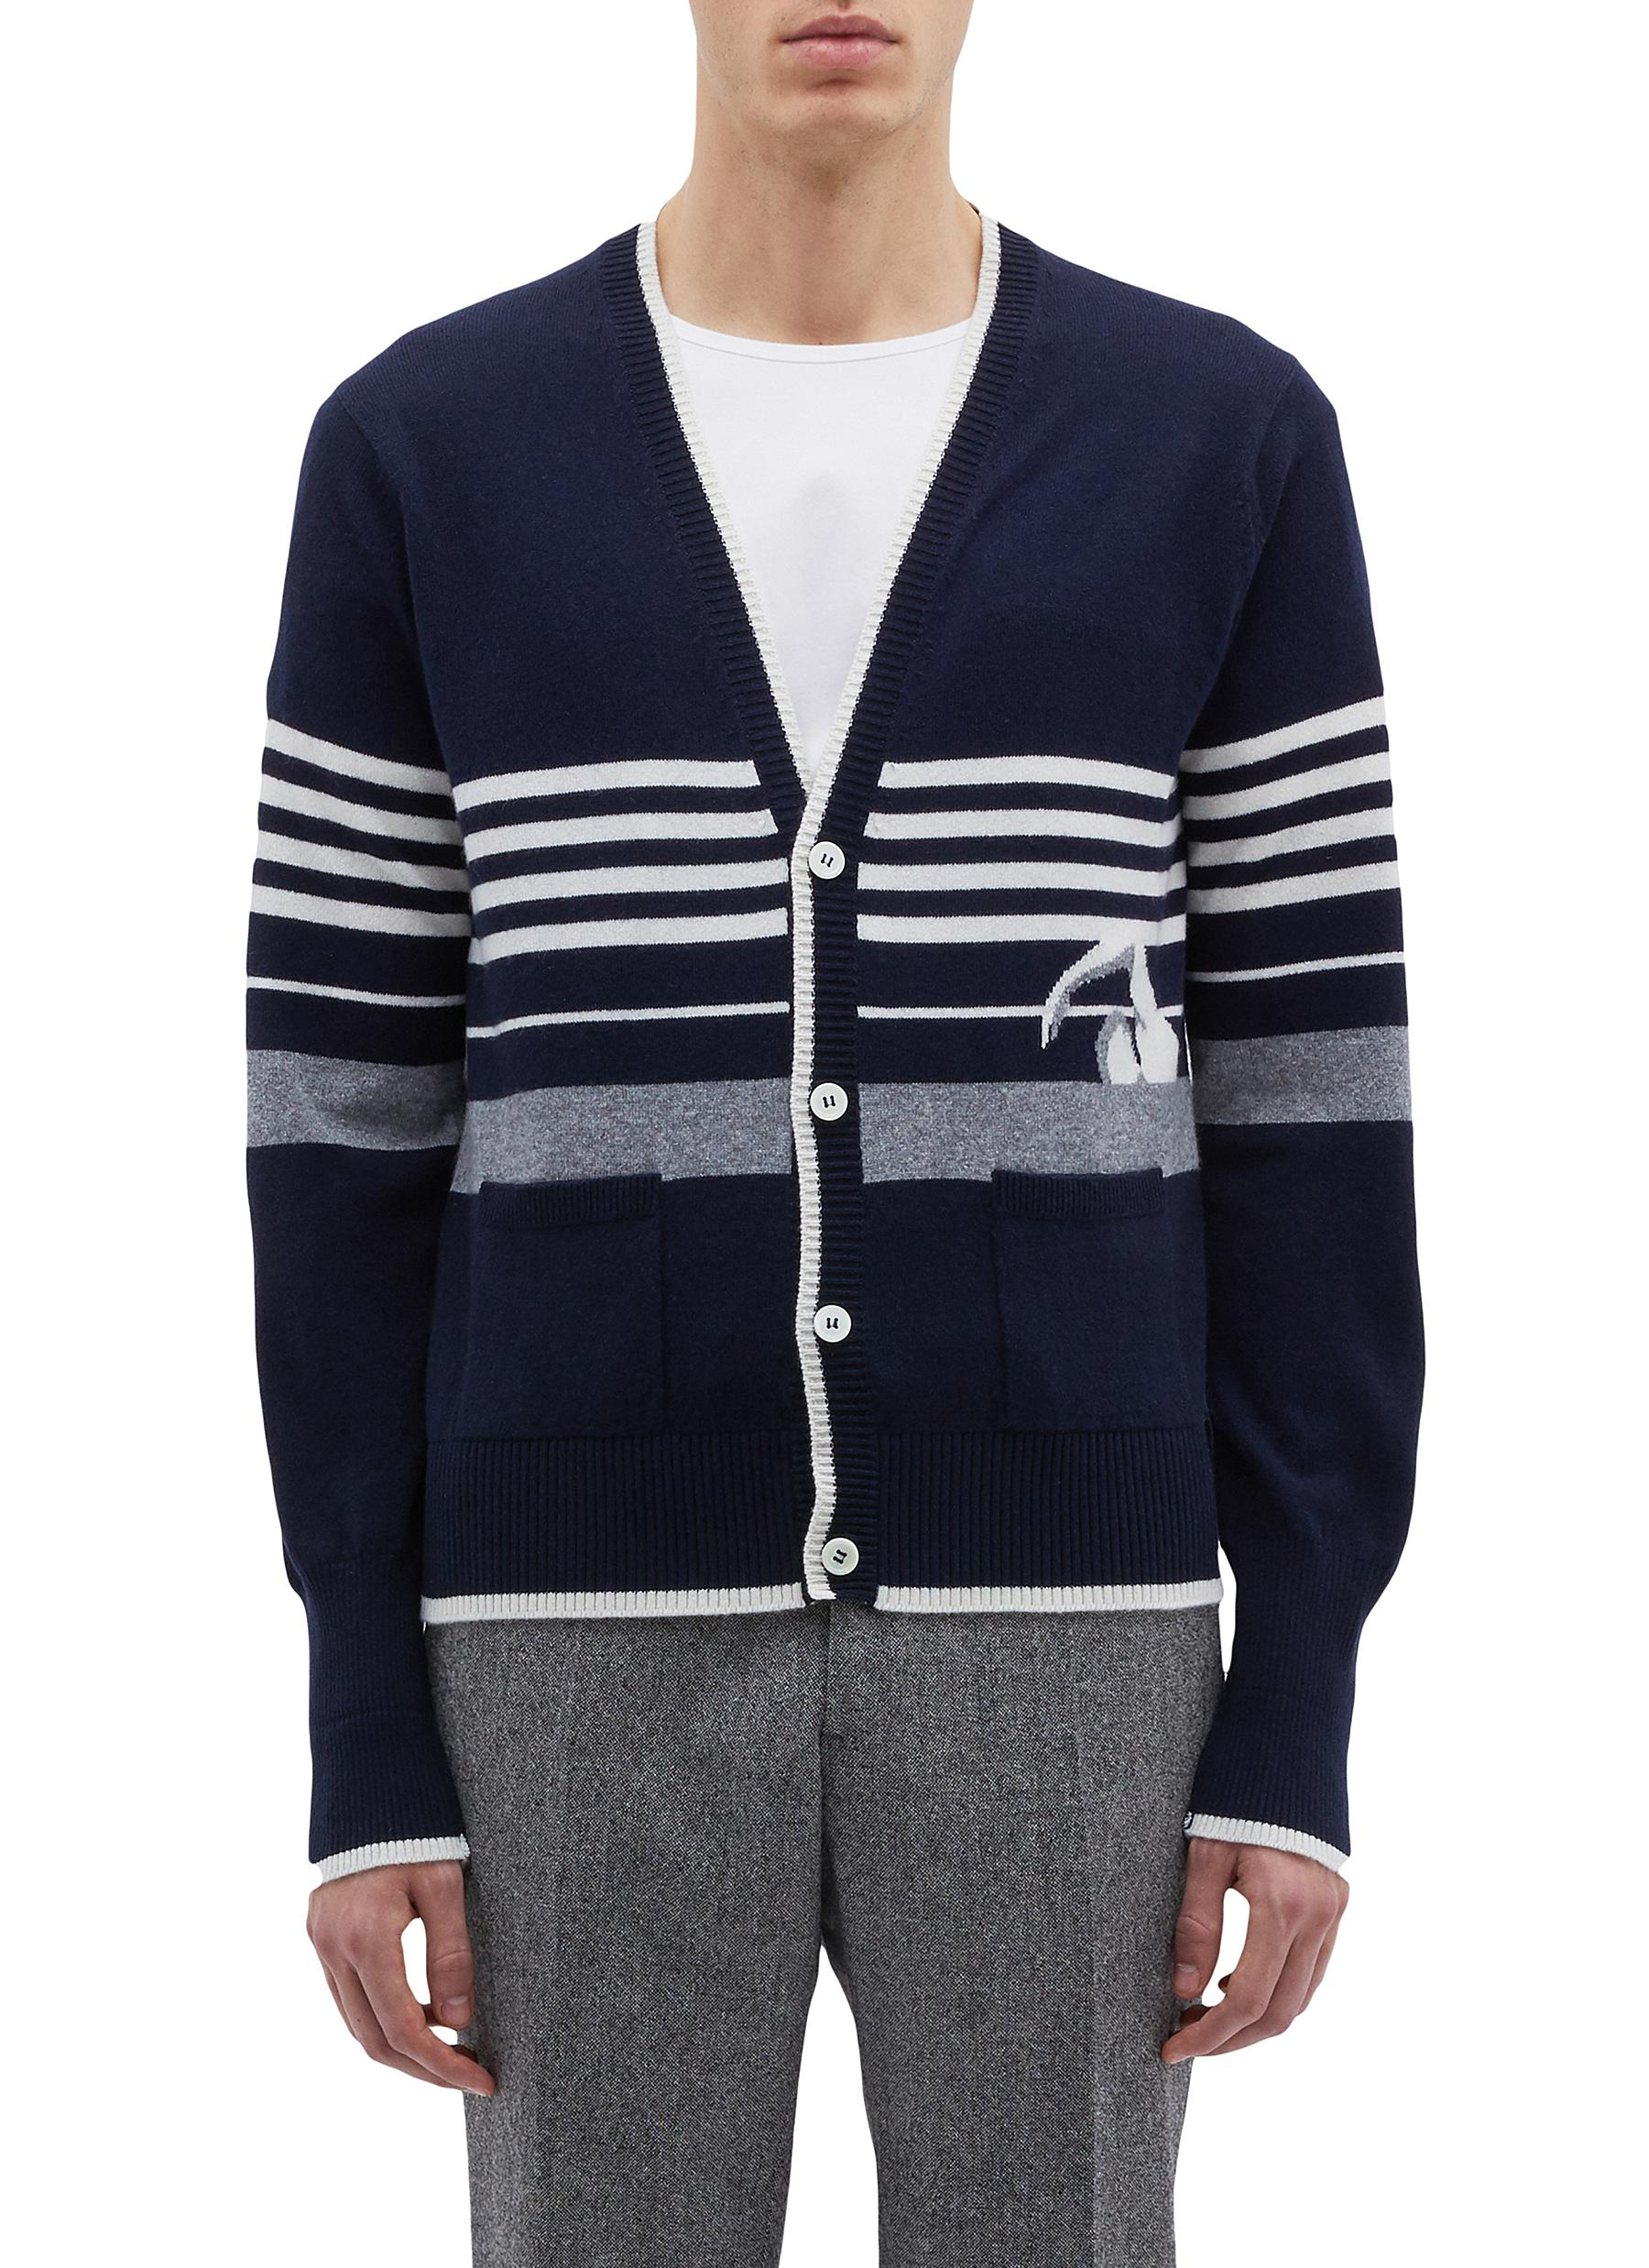 b1bc4dc89c95 Main View - Click To Enlarge - Thom Browne - Swimmer stripe intarsia  cashmere cardigan